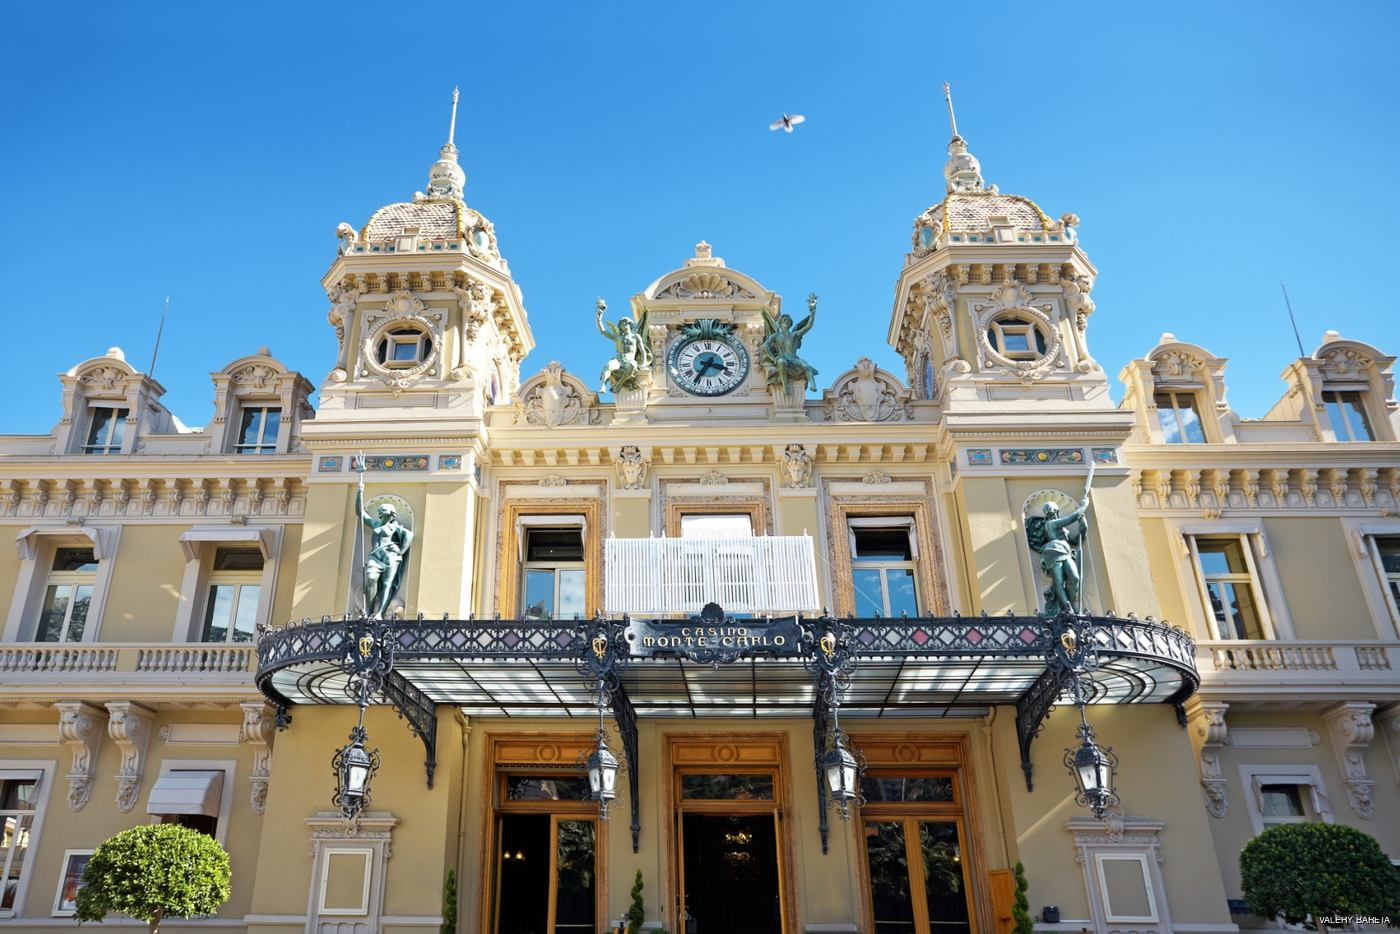 visiting the prince's palace of monaco on our french riviera charter vacation